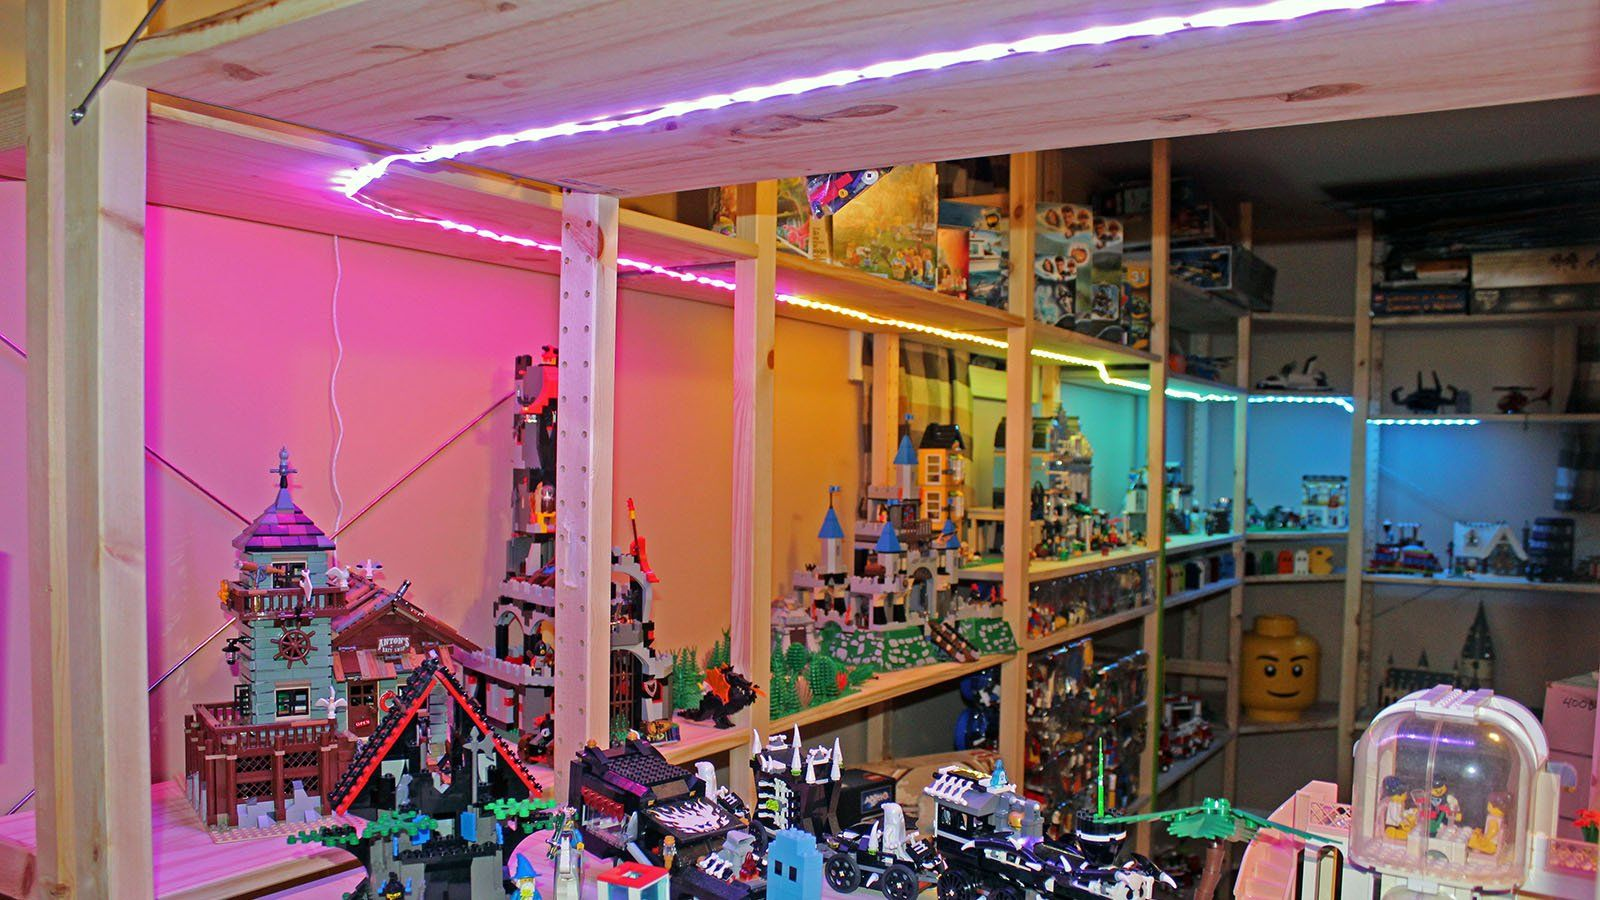 Govee Rgbic Led Strip Lights Are A Rainbow In Your Home Led Strip Lighting Strip Lighting Can Lights